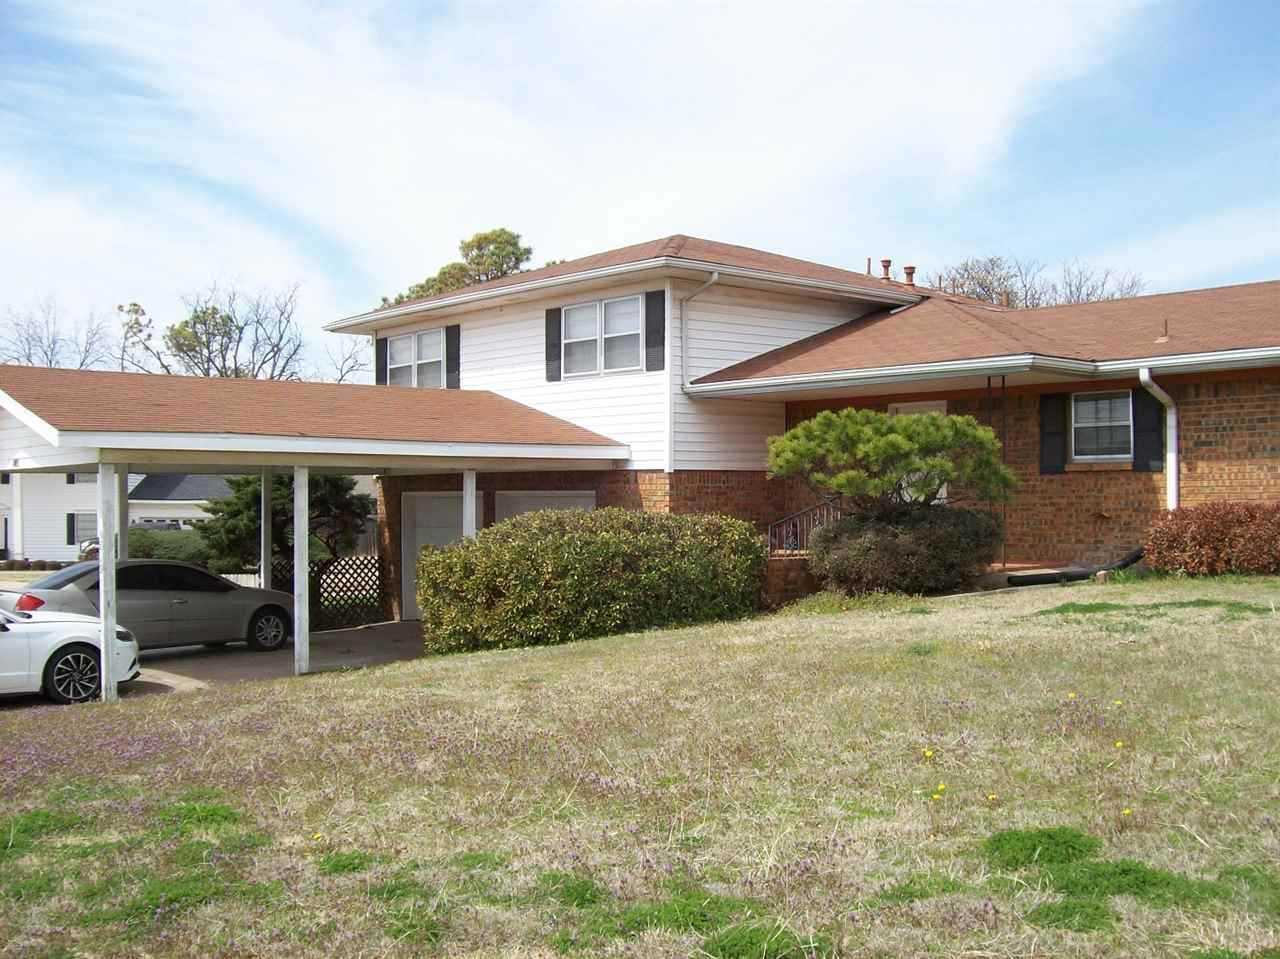 4803 Meadowbrook Dr - Photo 1